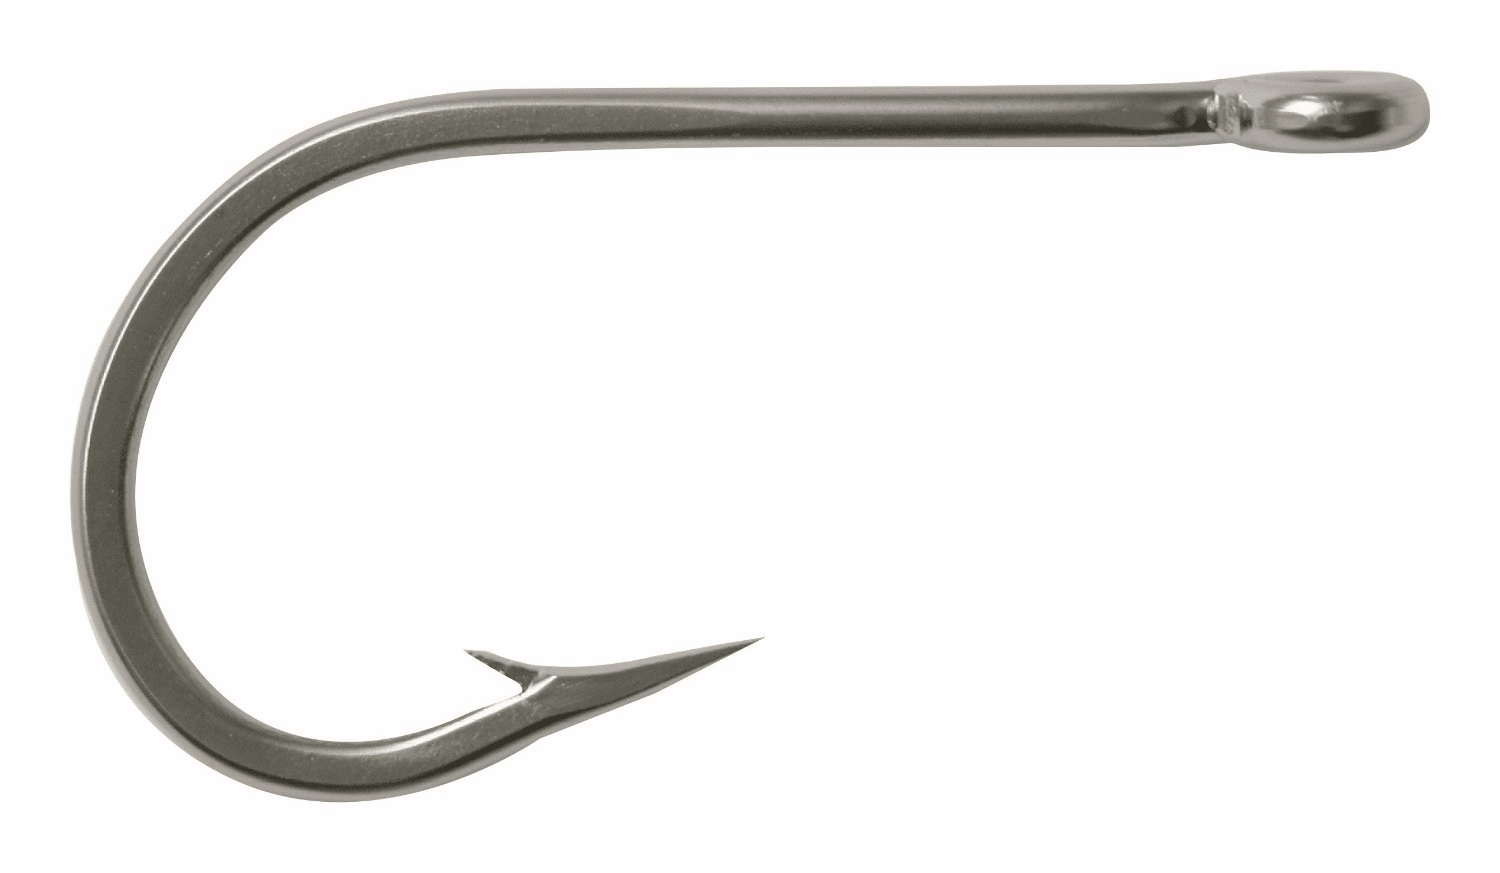 Stainless Steel Trolling Tuna Hooks- Model 7691S - 10/0 - 20 pcs